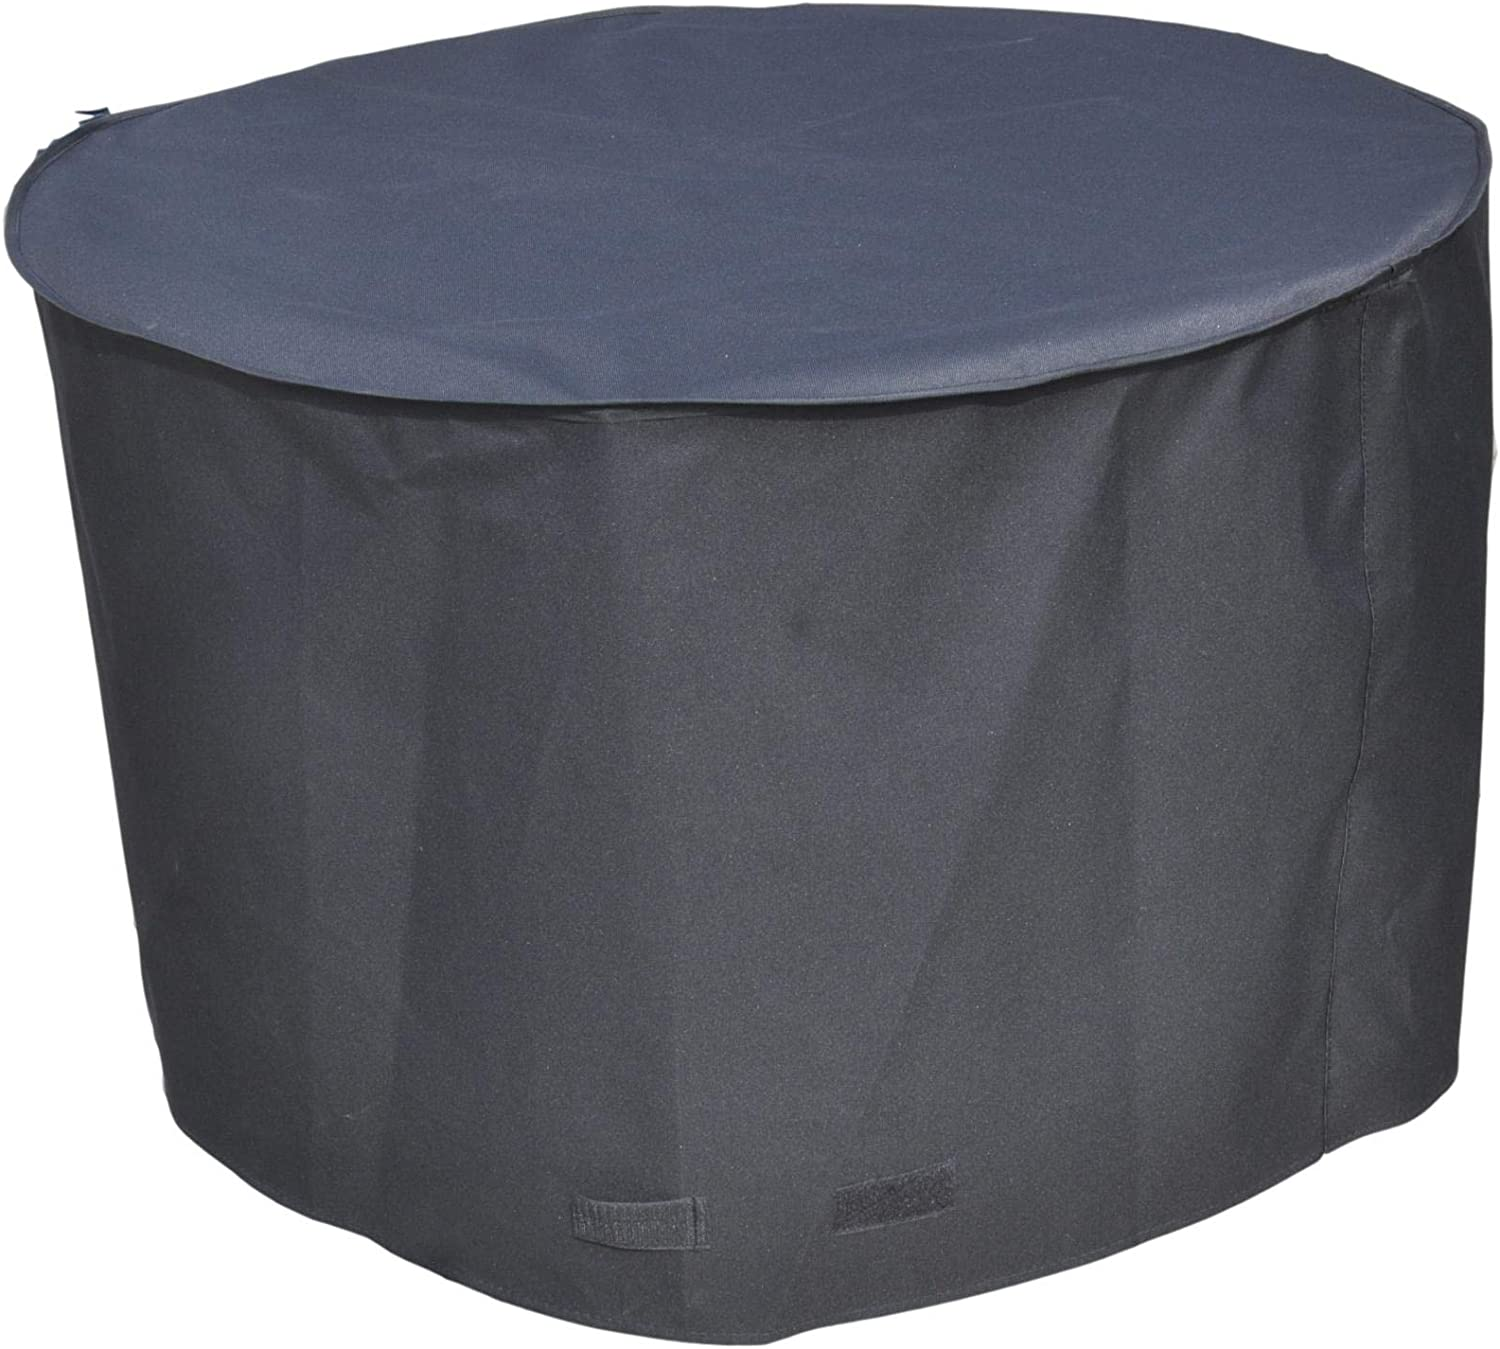 Sales for sale Heavy Duty Round Cover for Bali Ranking TOP14 Fire Outdoors 23 Gas inch